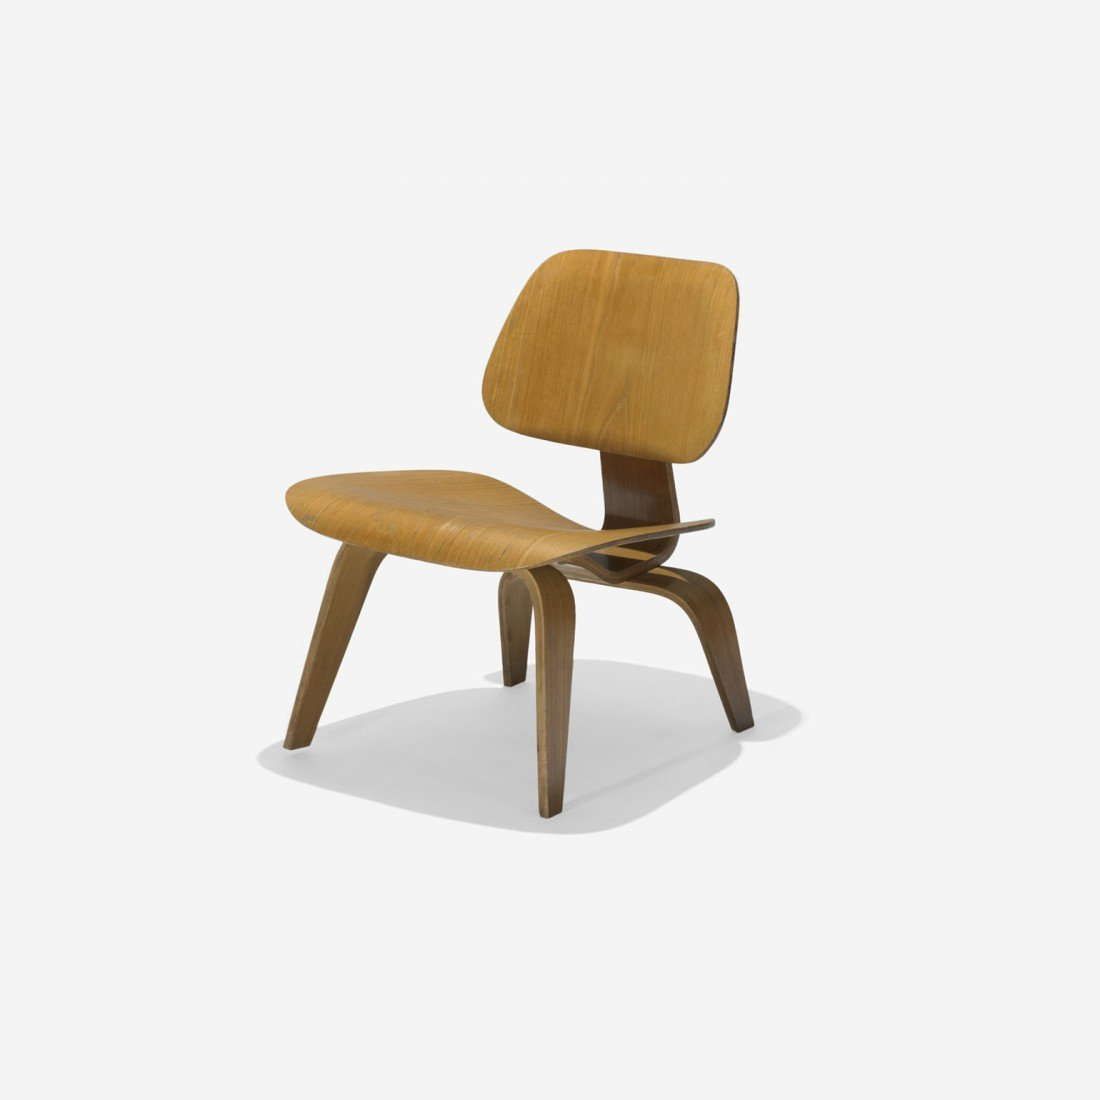 117: Charles and Ray Eames LCW